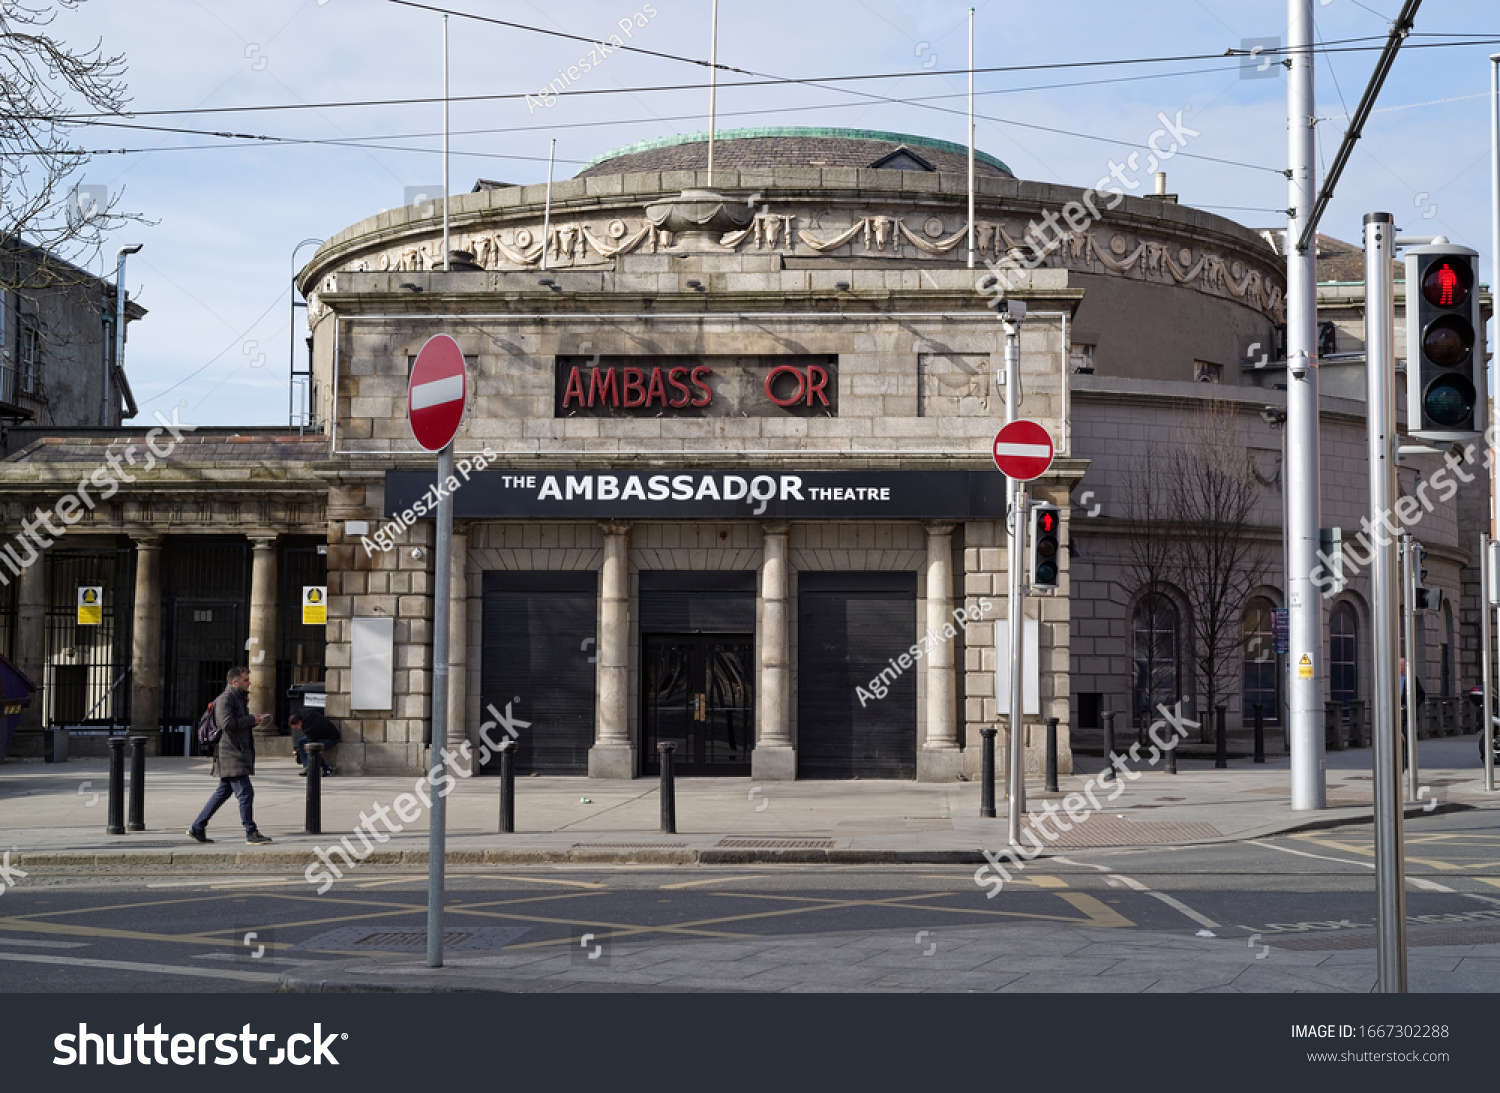 DUBLIN, IRELAND - MARCH 5, 2020: Main entrance to the Ambassador Theatre. The building recently renovated is currently used as an exhibition and event centre. Sunny winter day.